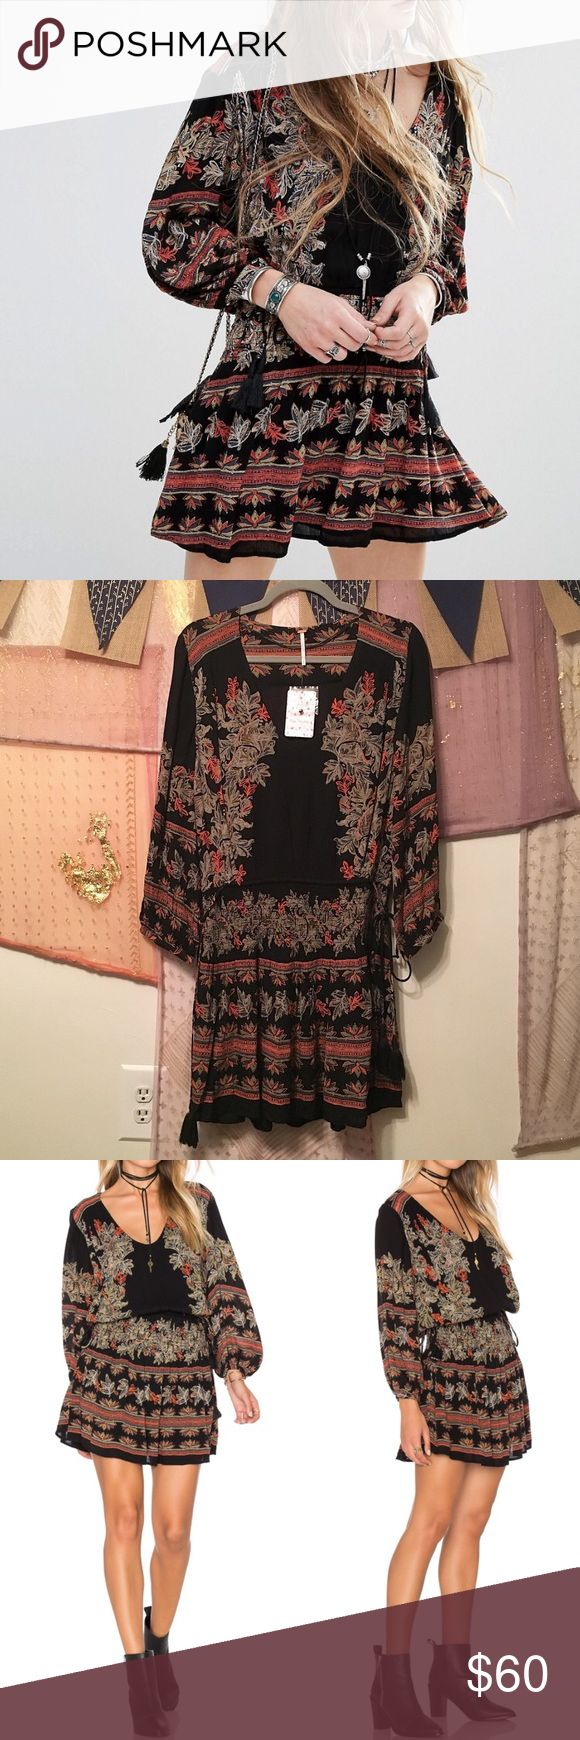 """Free People Floral Mini Dress Size S NWT Free People Floral Mini Dress Size S. Current season. Length is approximately 35"""". No trades. PRICE IS FIRM. Free People Dresses Mini"""